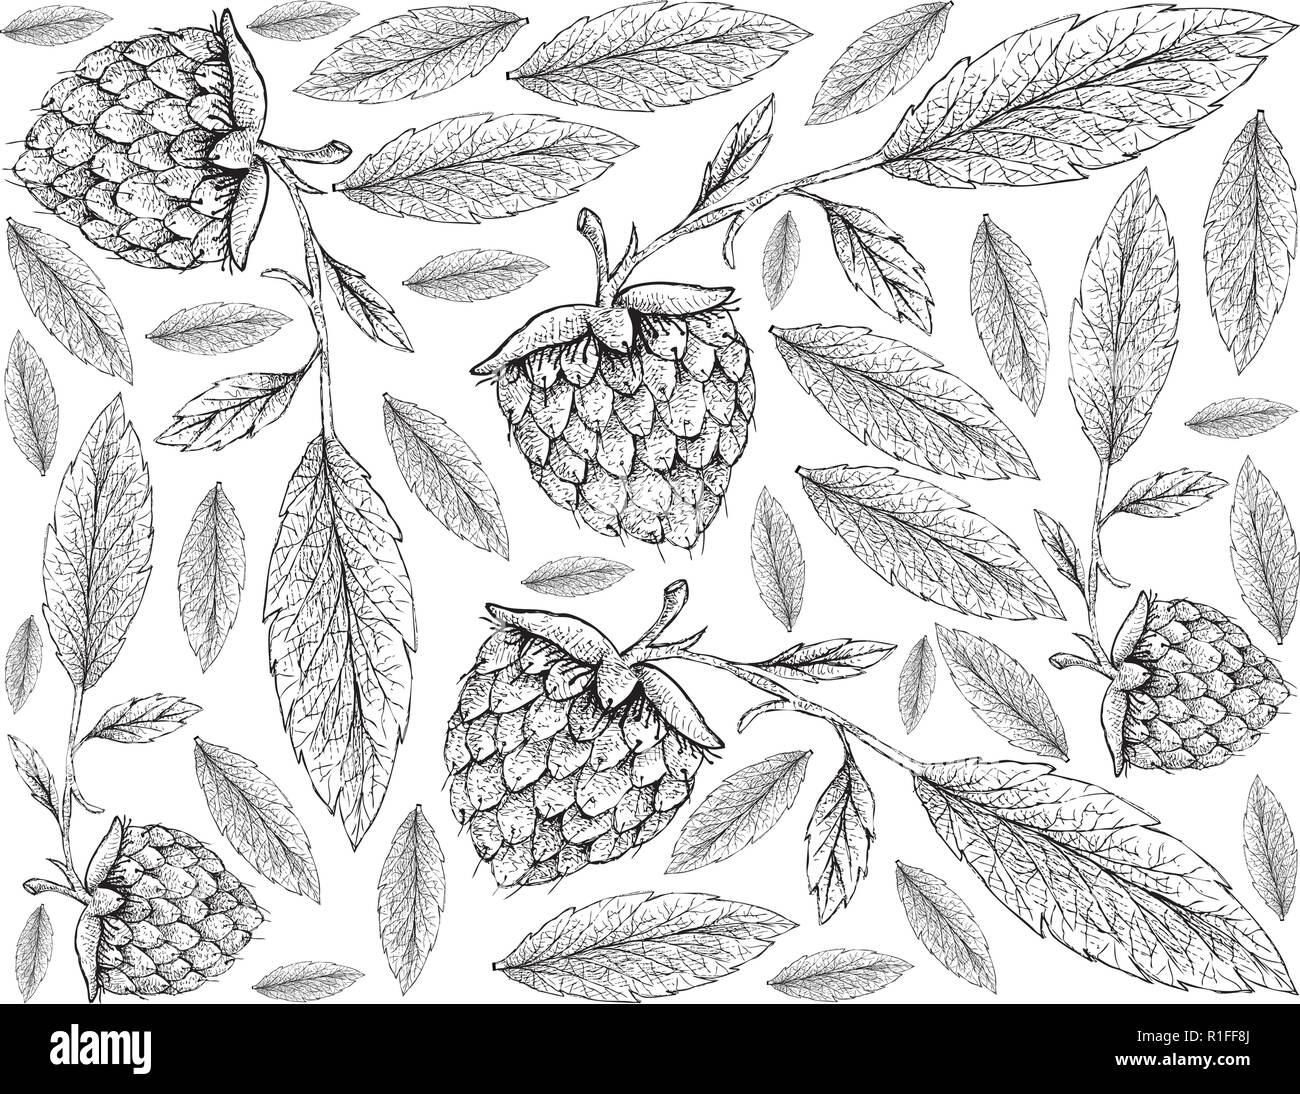 Berry Fruits, Illustration Wallpaper of Hand Drawn Sketch Delicious Fresh Golden Raspberries or Rubus Ellipticus Fruits Isolated on White Background. - Stock Vector